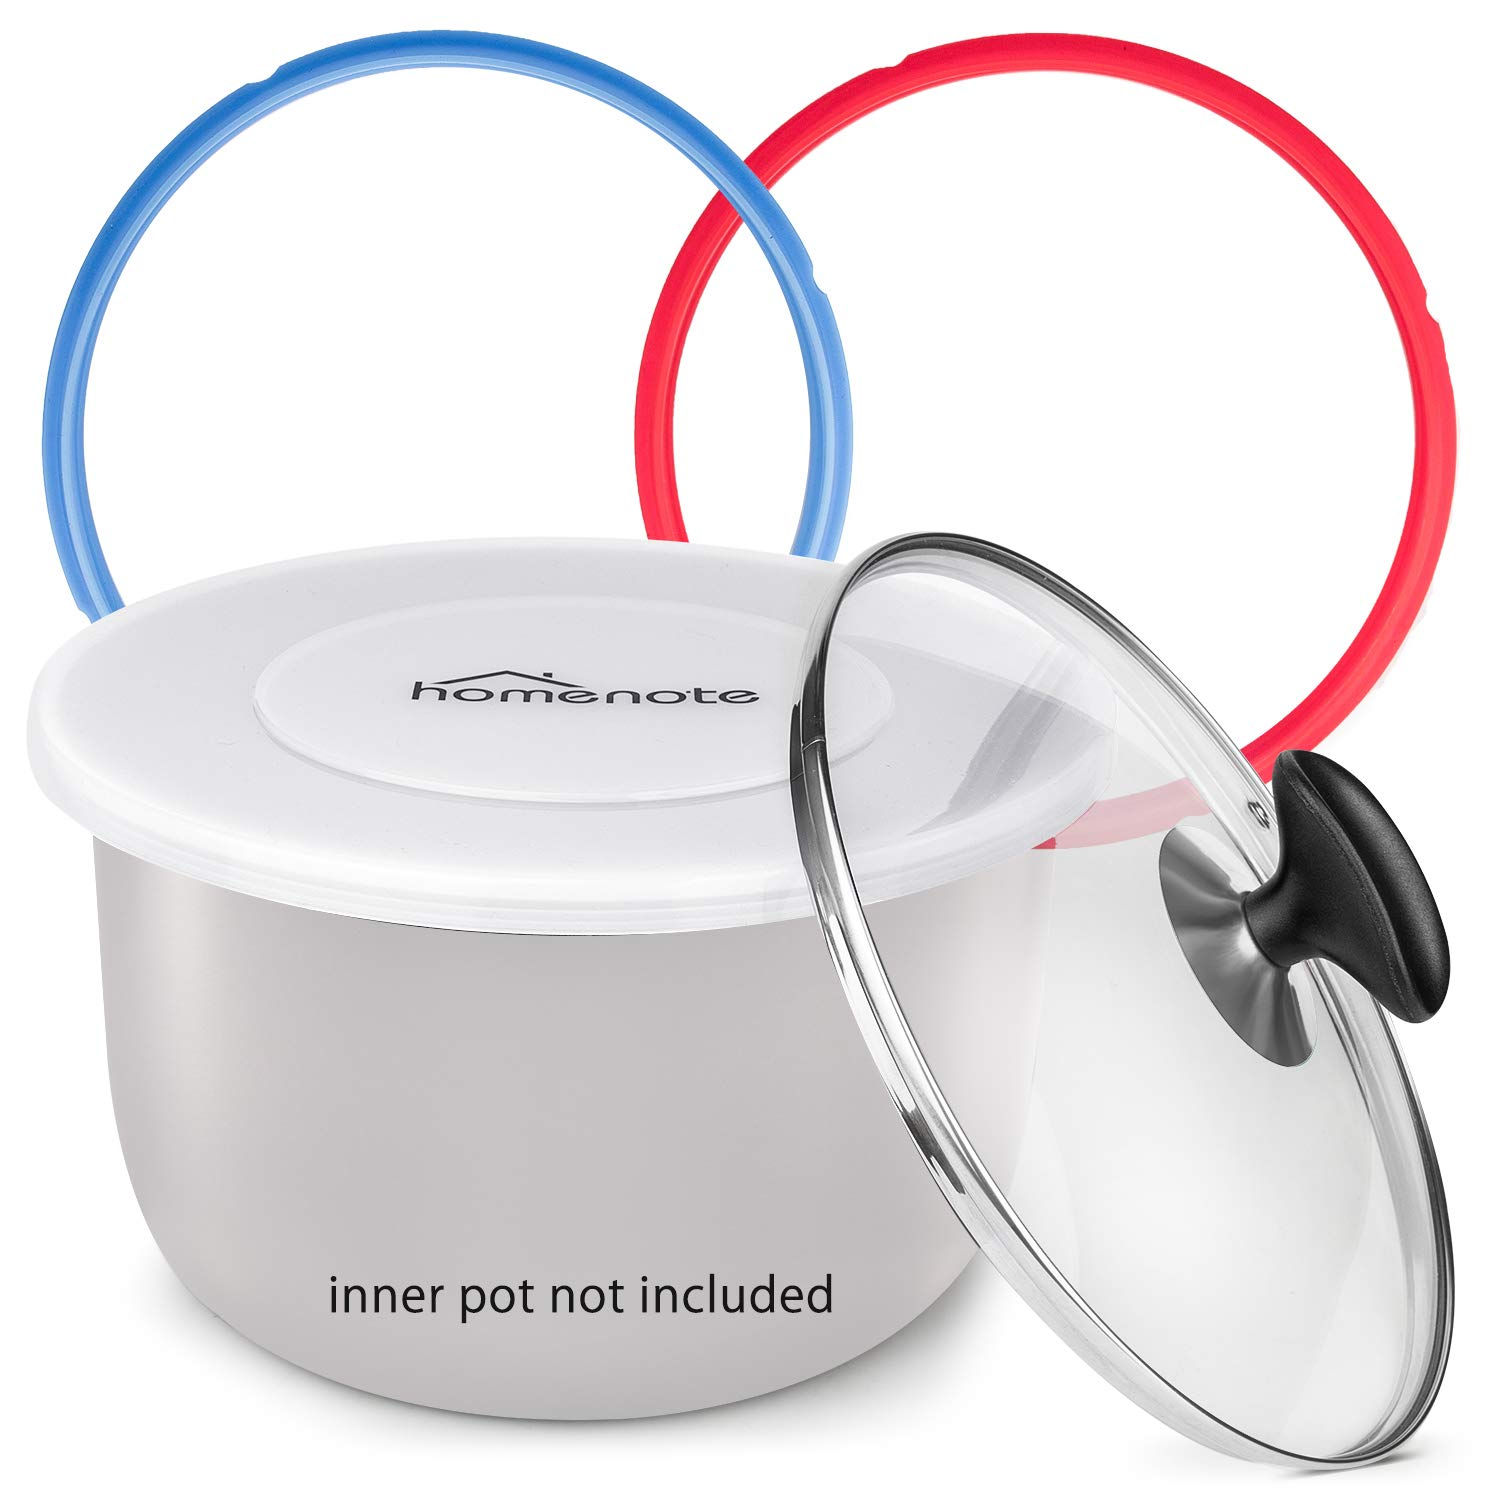 HOMENOTE Pressure Cooker Accessories Compatible with Instant Pot 6qt Only- Best Value Set includes 2 Pack Sealing Ring, Tempered Glass Lid, Silicone Lid, Steam Release by HOMENOTE